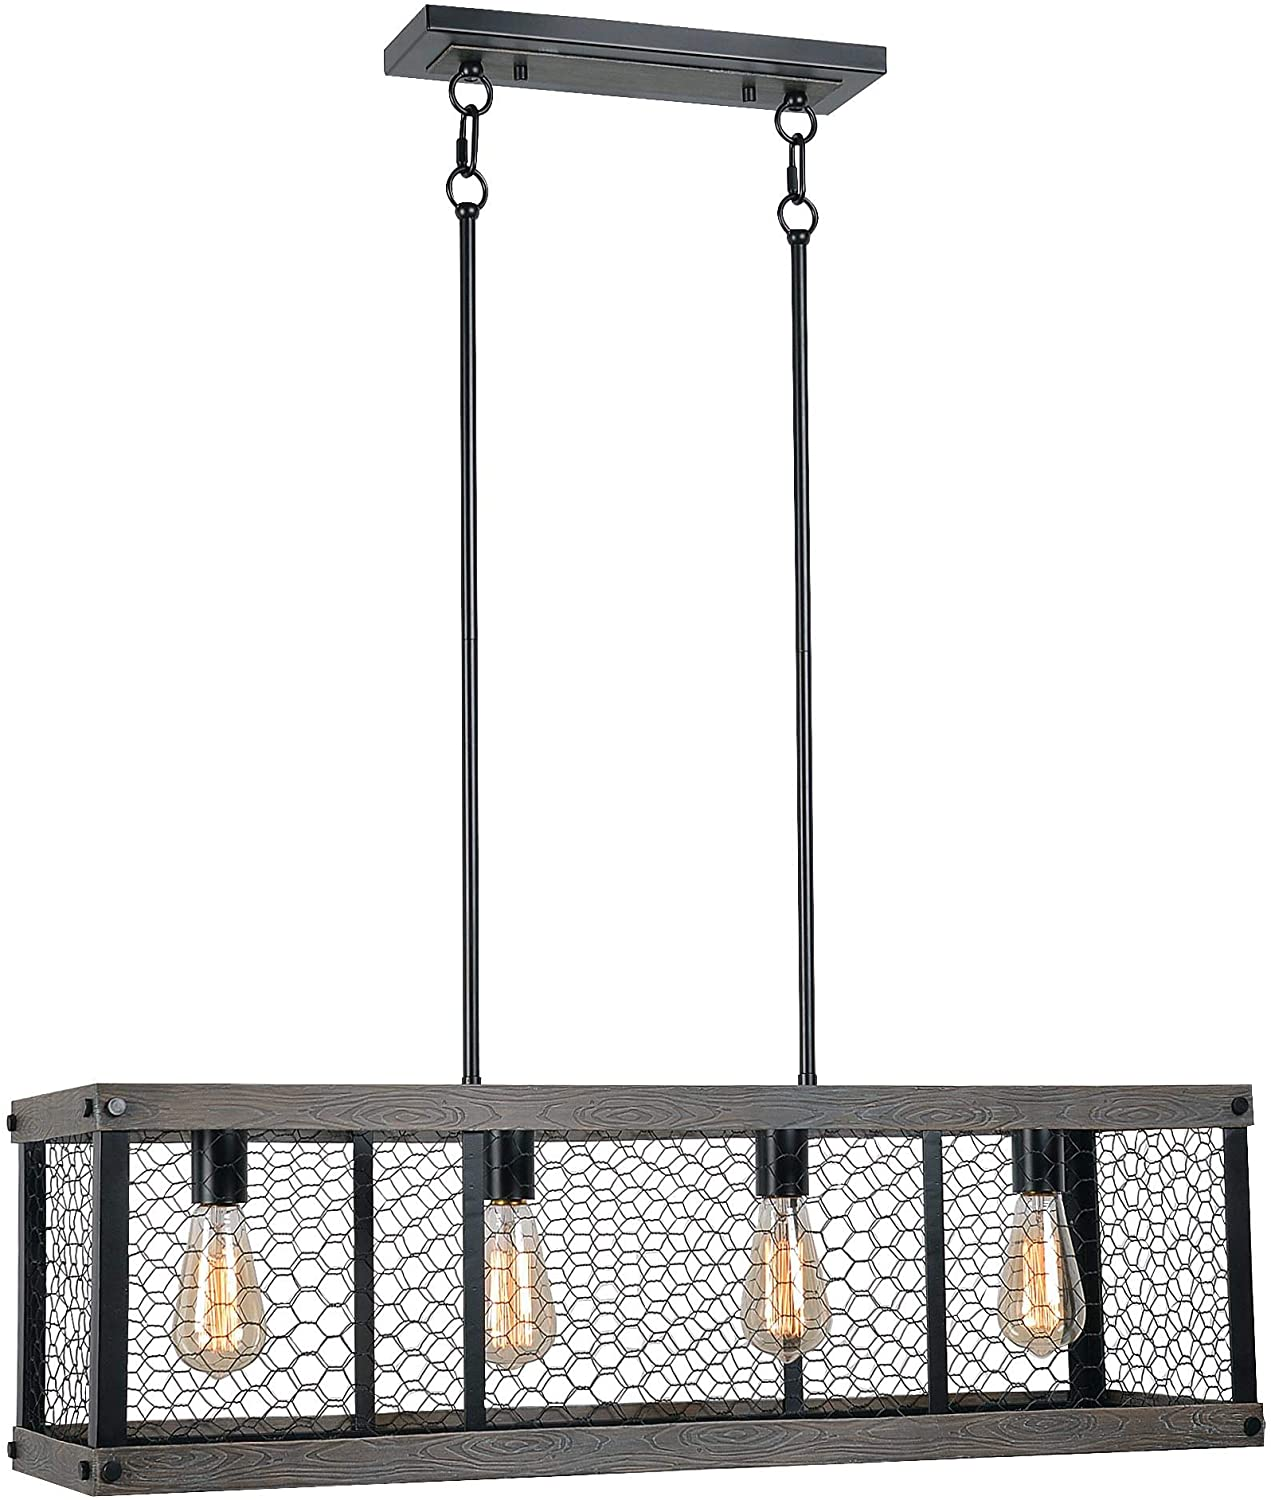 Kenroy Home Rustic 4 Light Island Light,11 Inch Height, 33 Inch Width. 10 Inch Depth with Wood and Oil Rubbed Bronze Finish